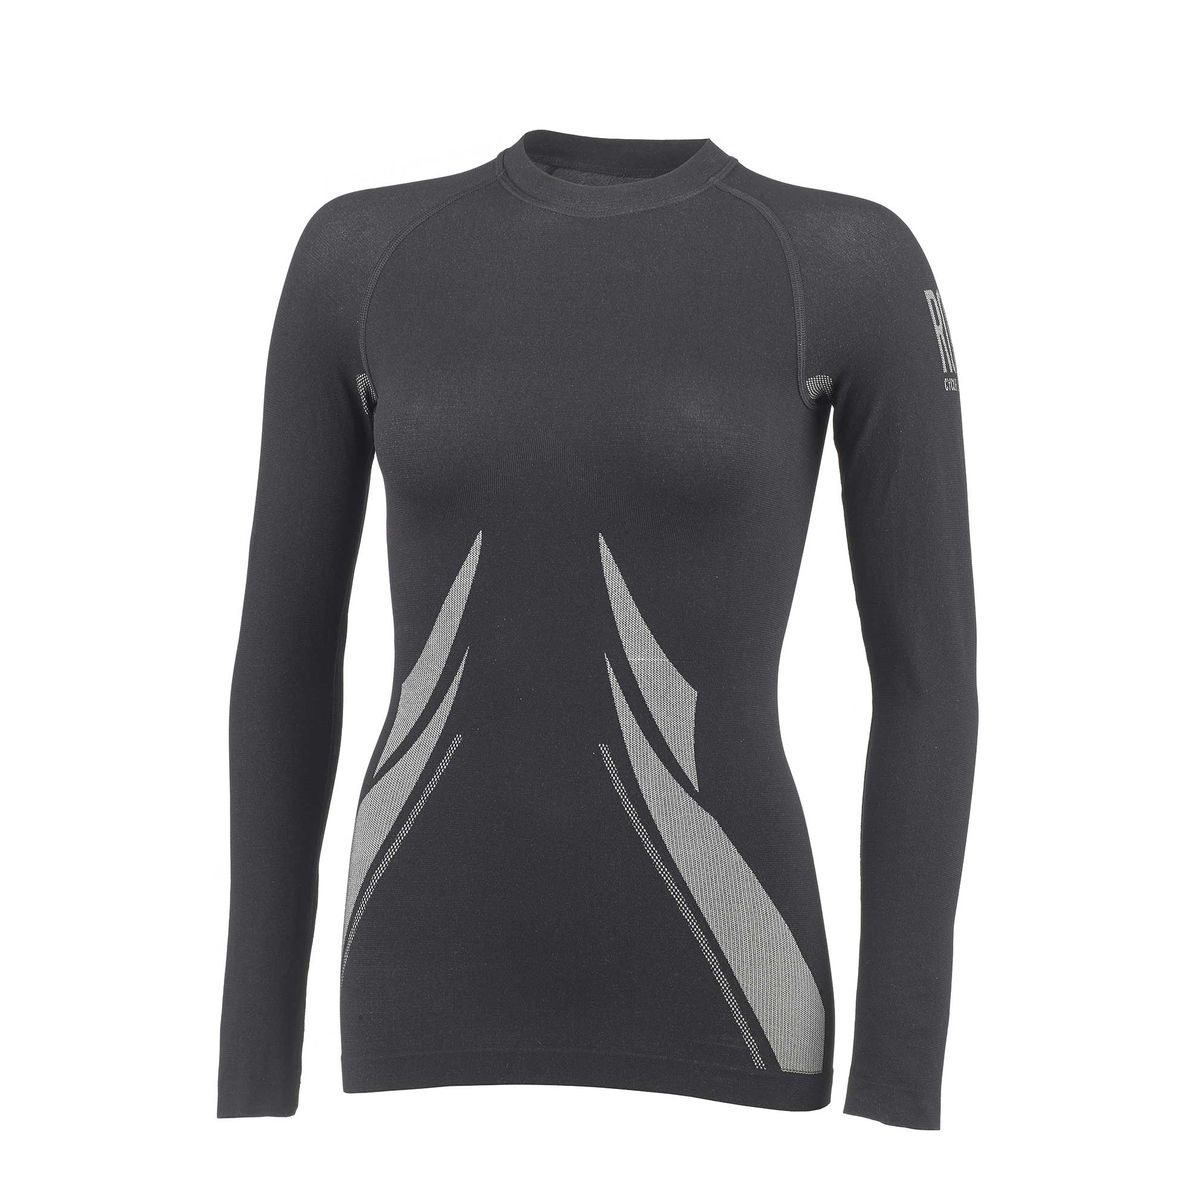 SEAMLESS II Women's Long Sleeve Base Layer